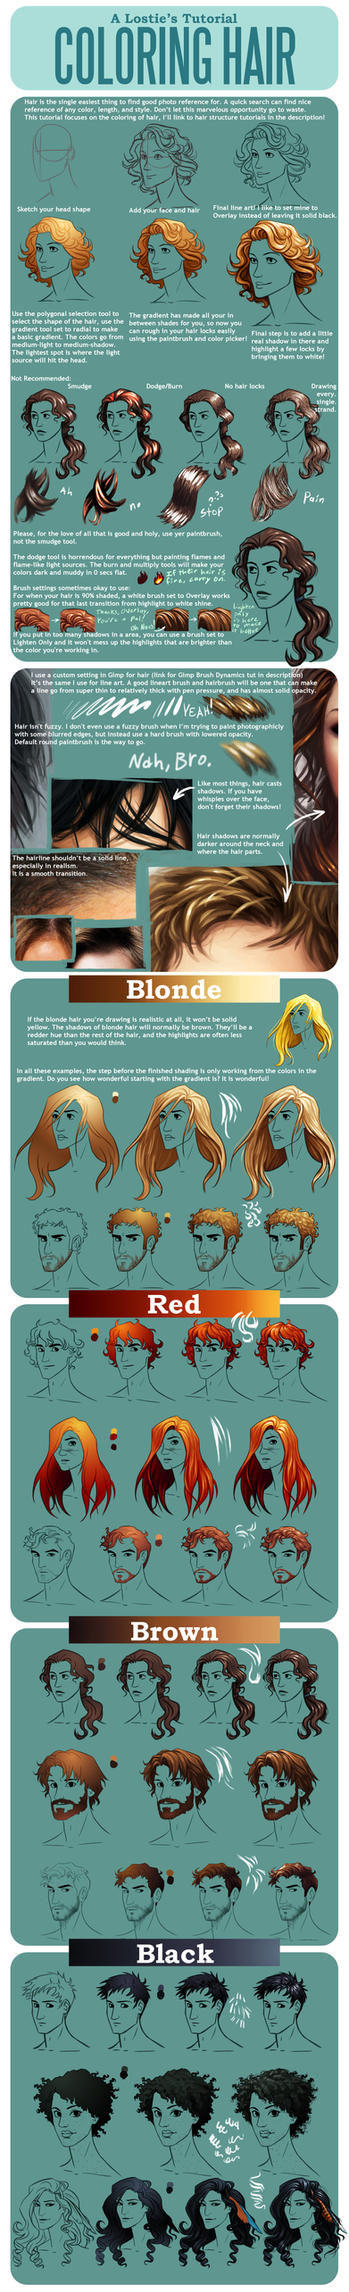 Hair Coloring Tutorial by lostie815